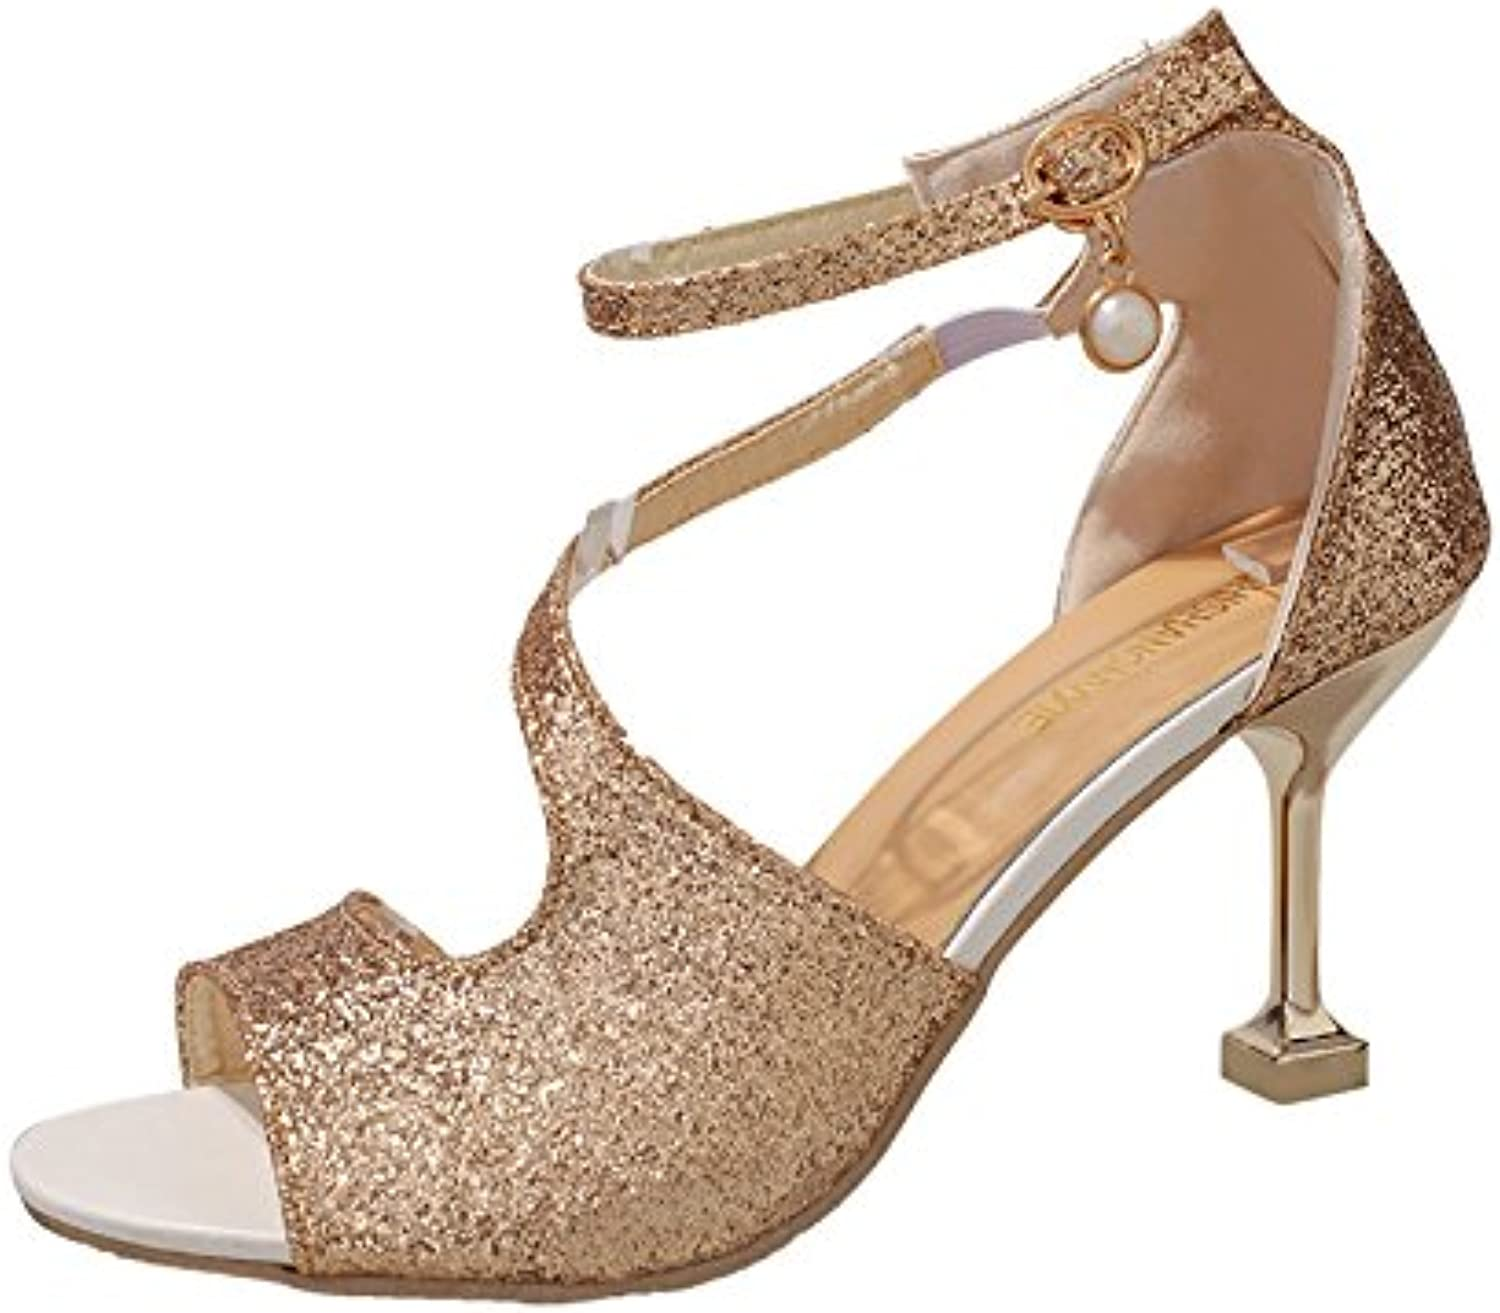 The sanding cup and high heel of the women's shoes,Golden,Thirty-four